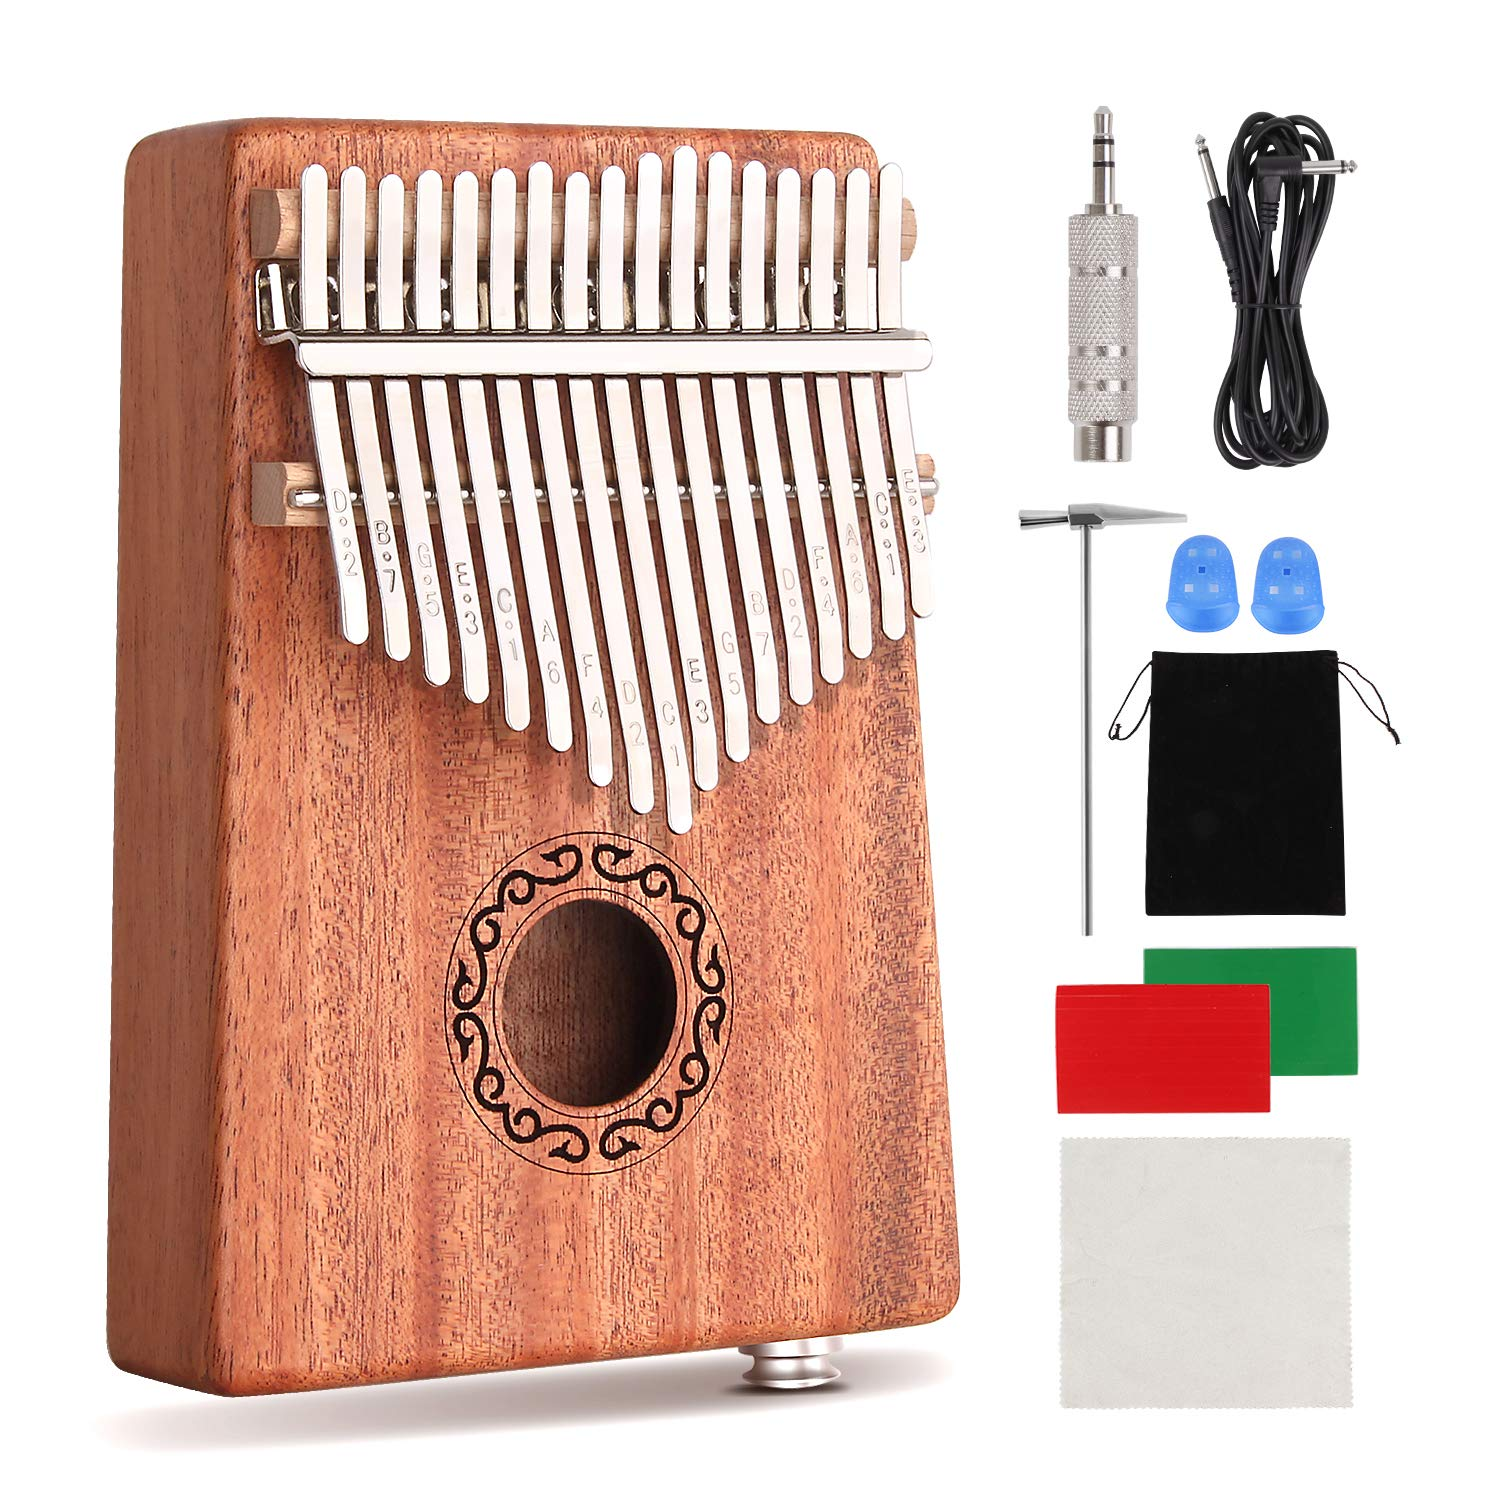 CXhome Electric Kalimba 17 Key Thumb Piano,Mbira African Mahogany Finger Piano Pickup with 6.35mm Audio Interface Sanza Hand Kit, Likembe Musical Instruments for beginners or professioners by CXhome